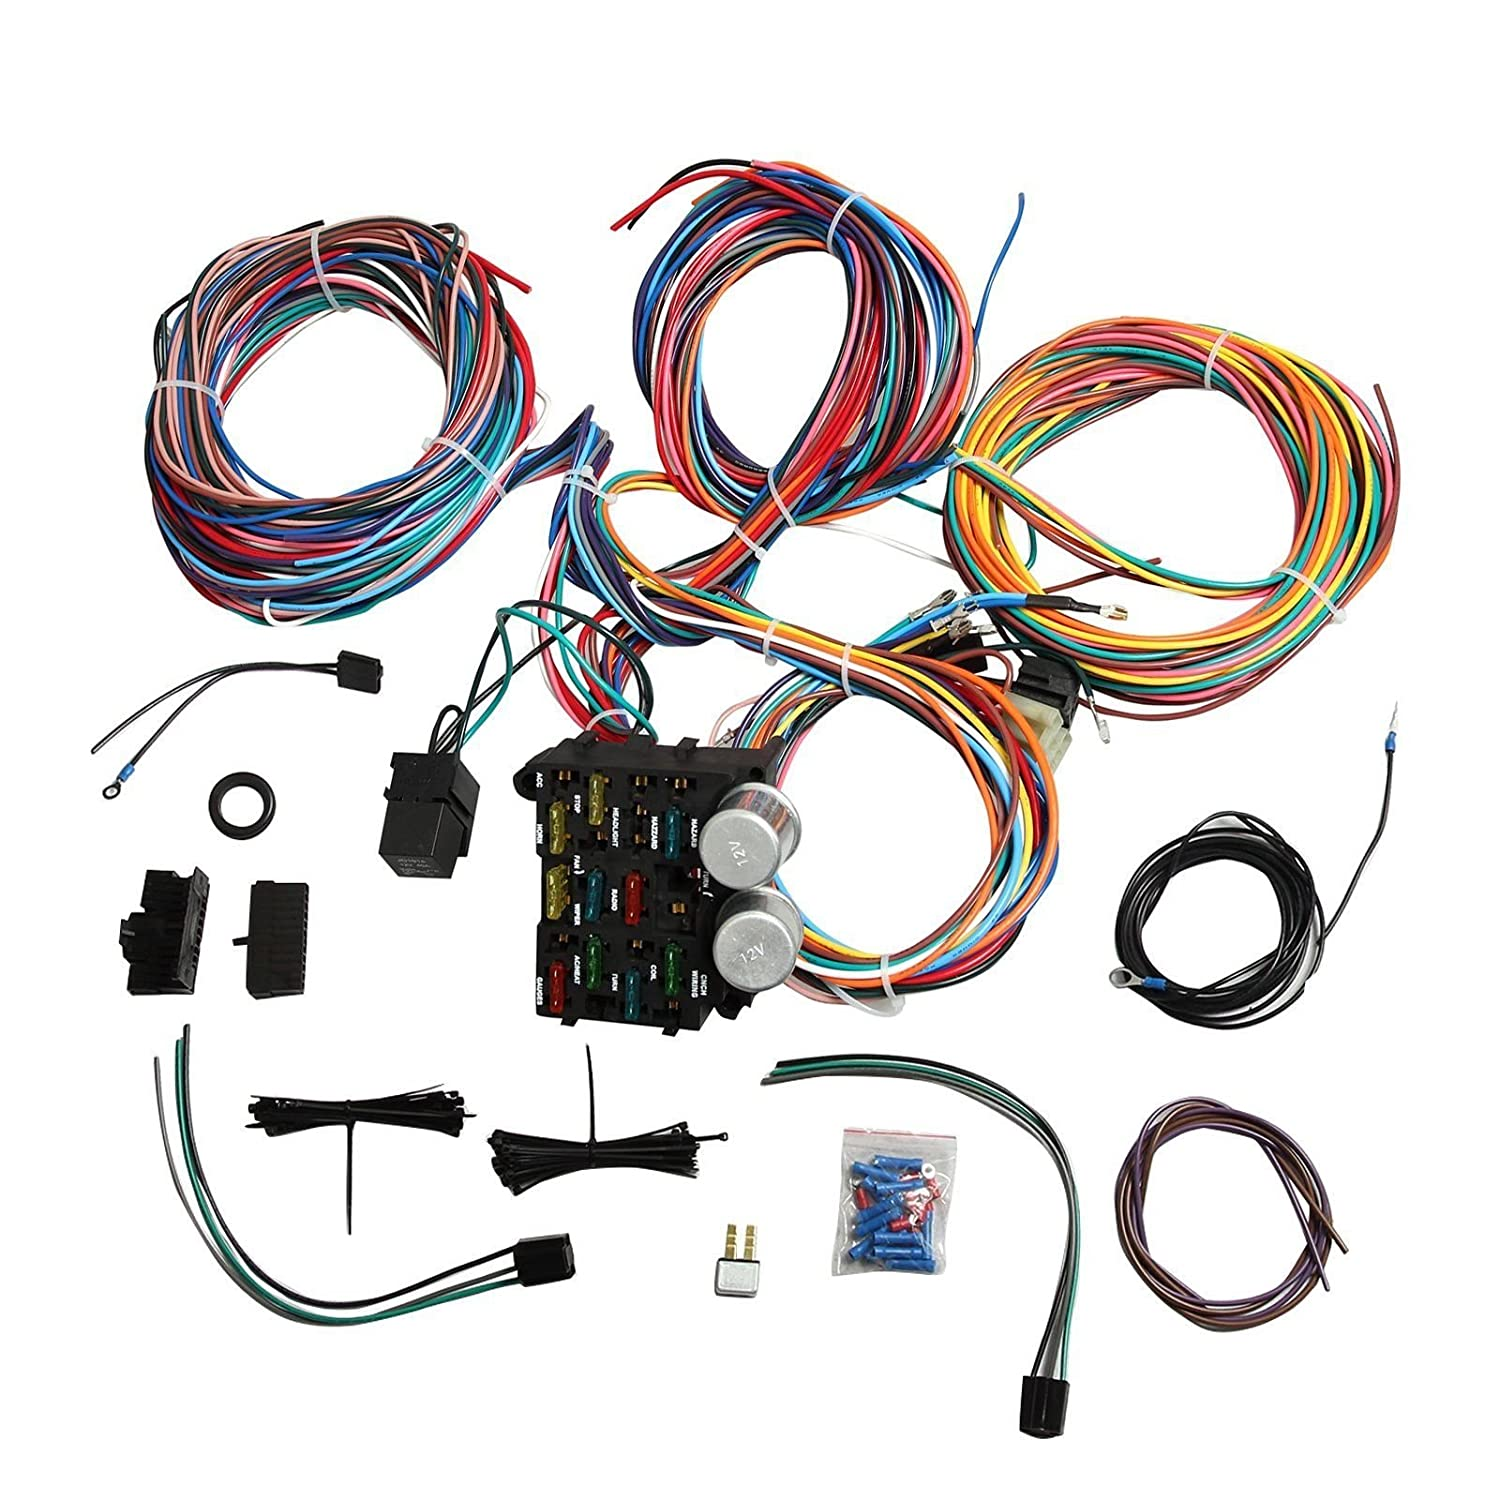 Prime Universal Wiring Harness Kit 12 Circuit Hot Rod Wiring Harness For Wiring Digital Resources Funapmognl